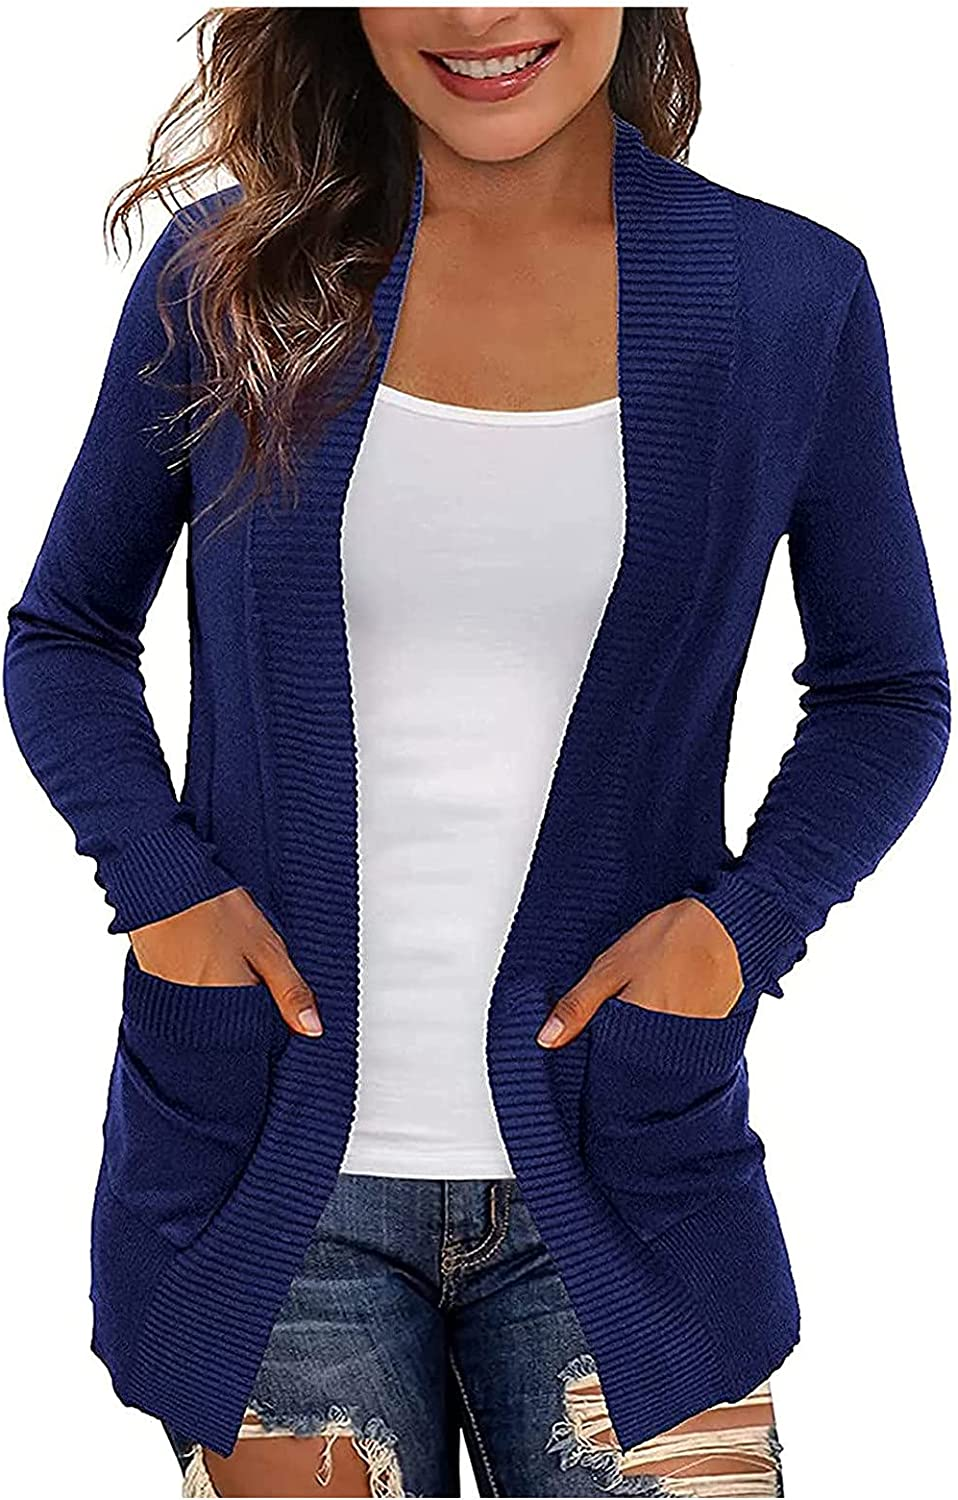 Xinantime Womens Plus Size Sweaters Cardigans Lightweight with Pockets Solid Color Open Front Ladies Long Sleeve Tops